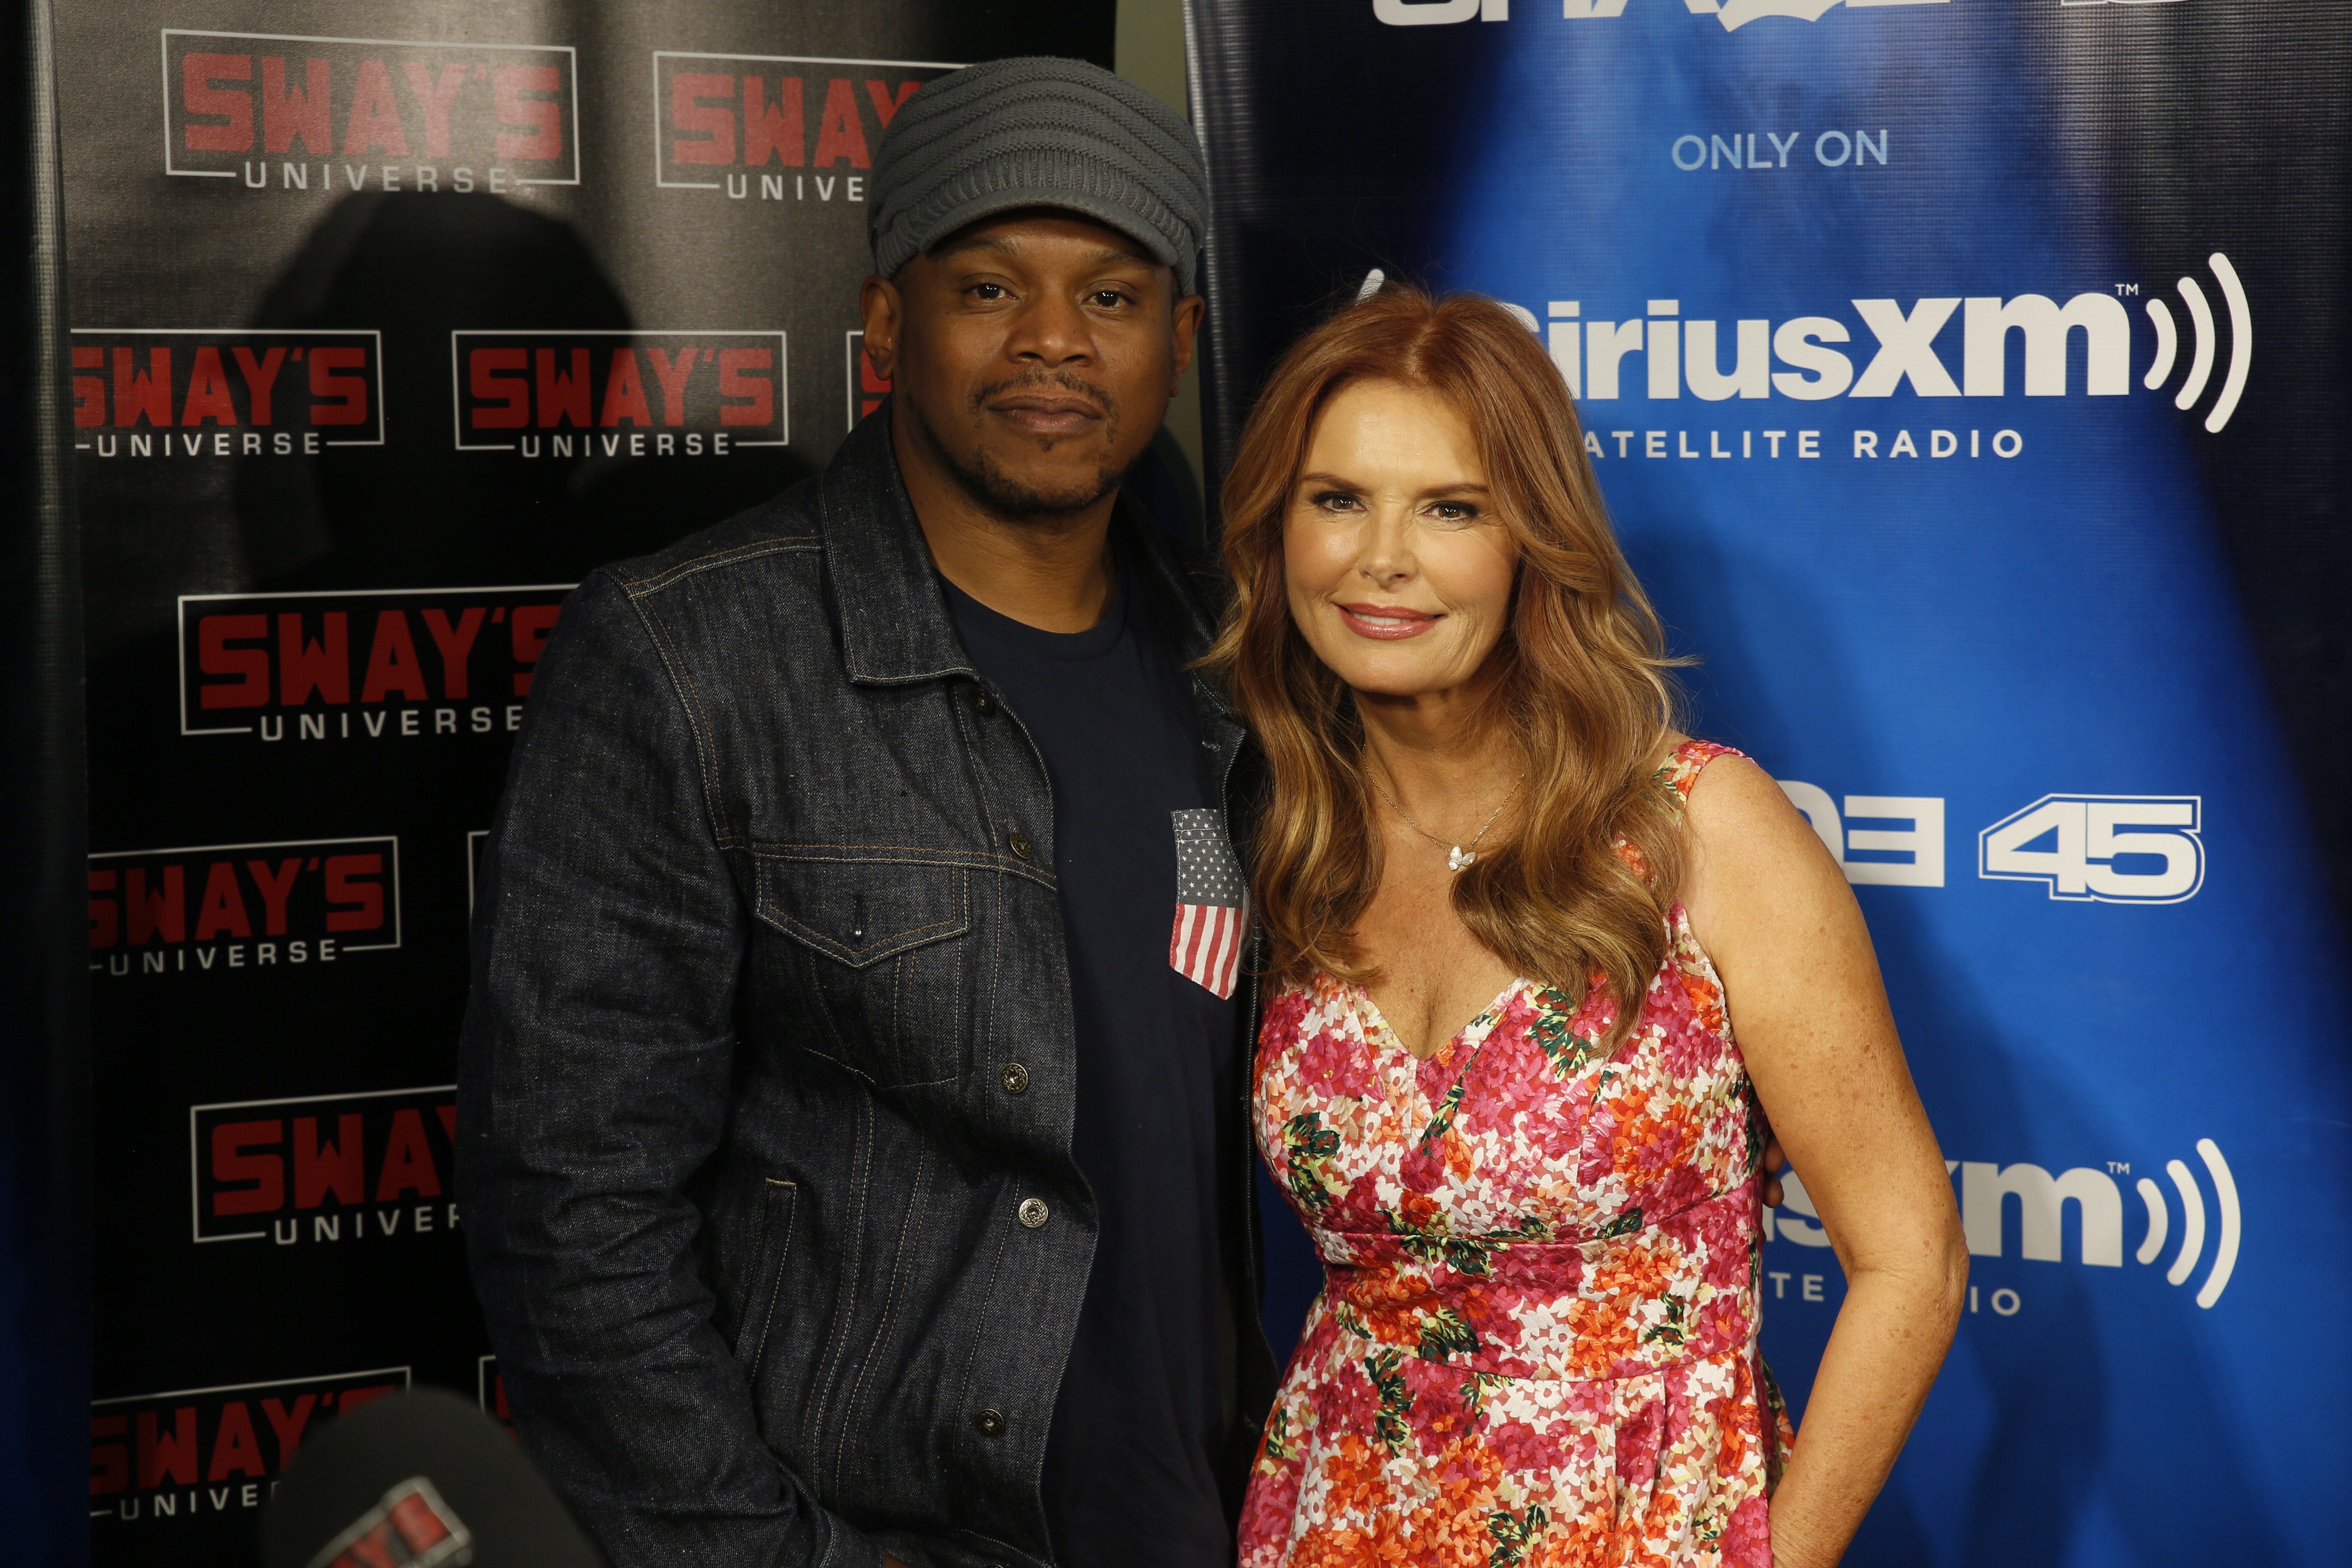 Roma Downey and Mark Burnett Partner with MGM to produce LightWorkers.com